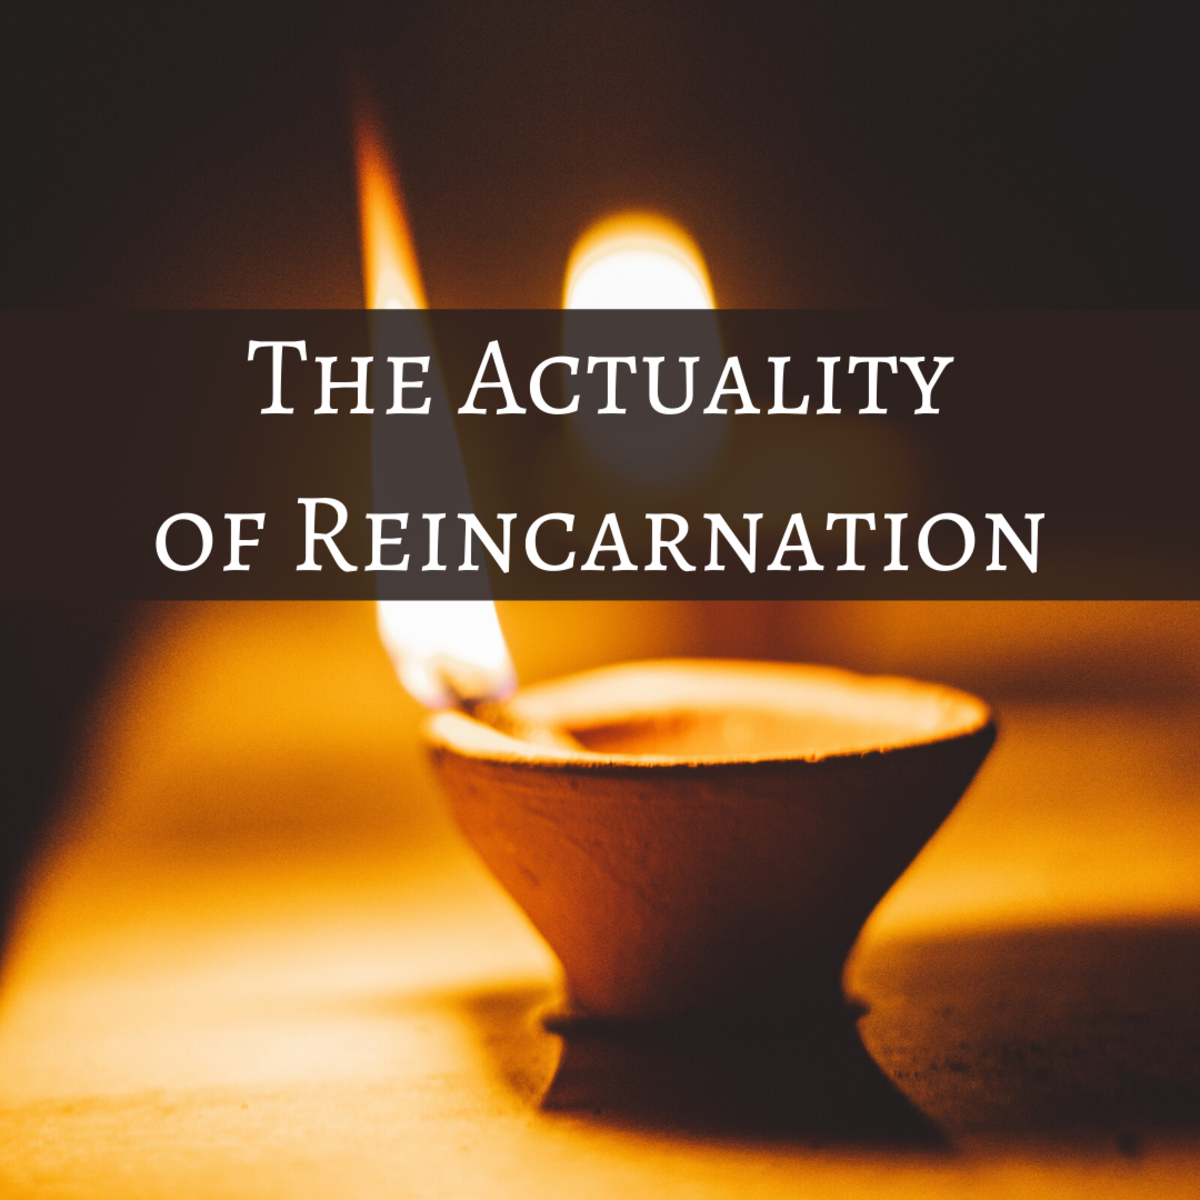 Discover some reasons why reincarnation is real.